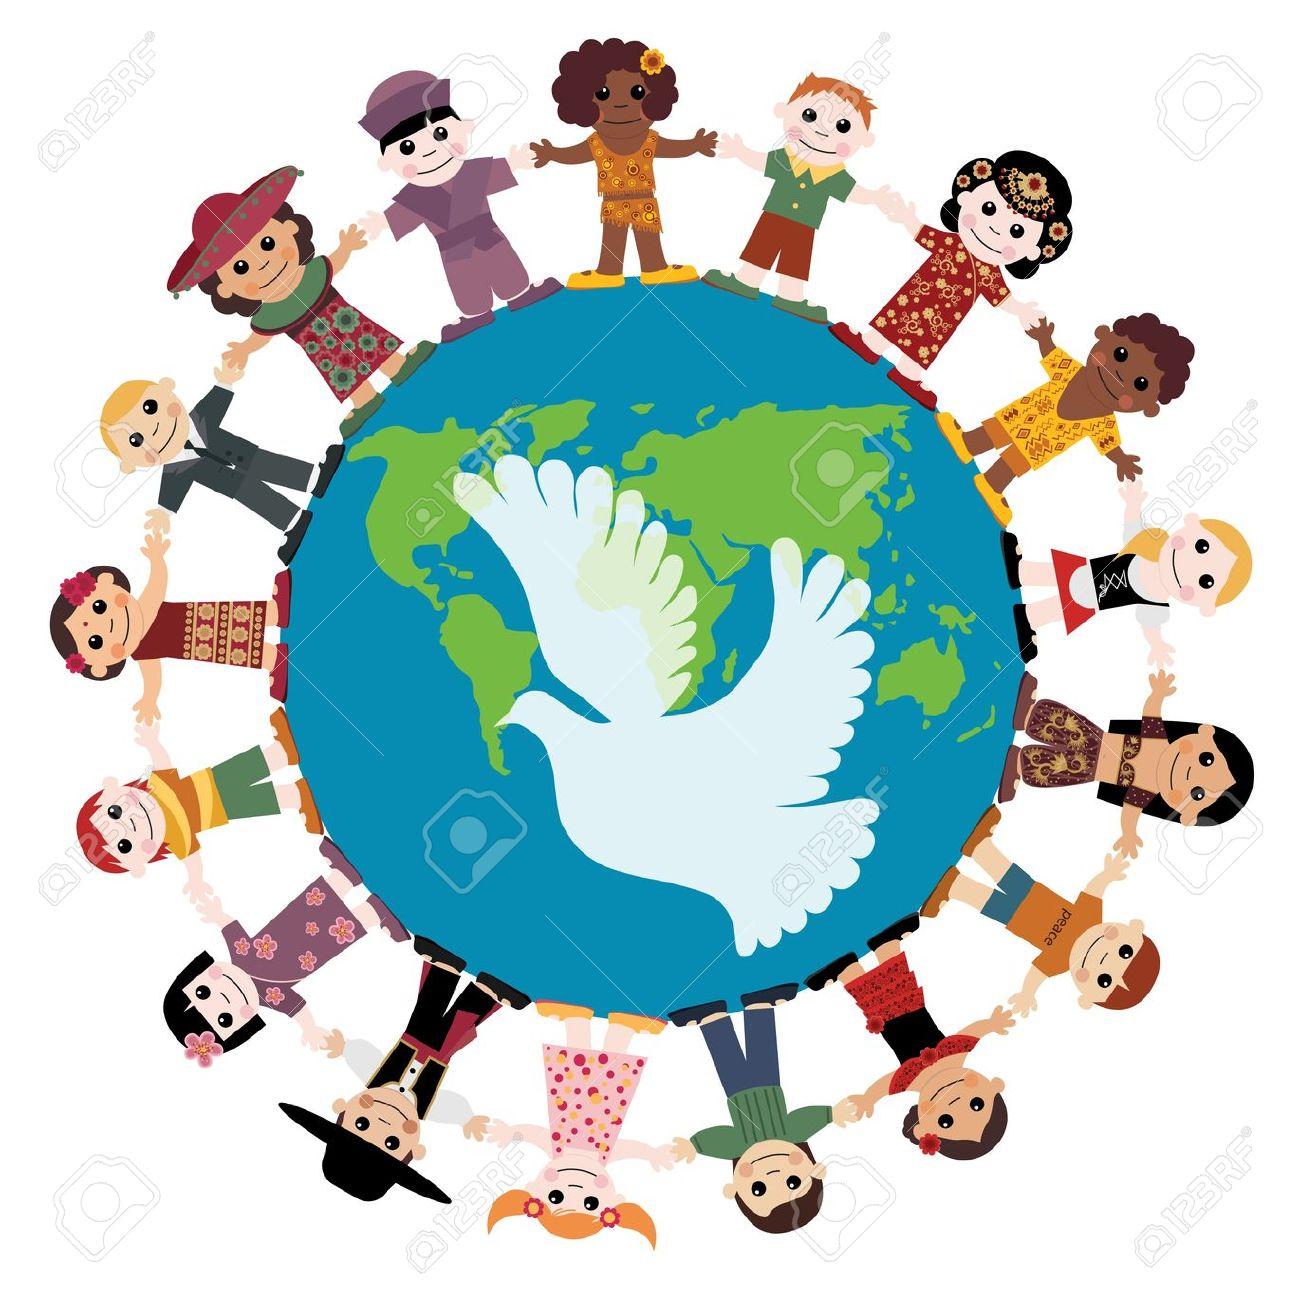 children of the world clipart at getdrawings com free for personal rh getdrawings com